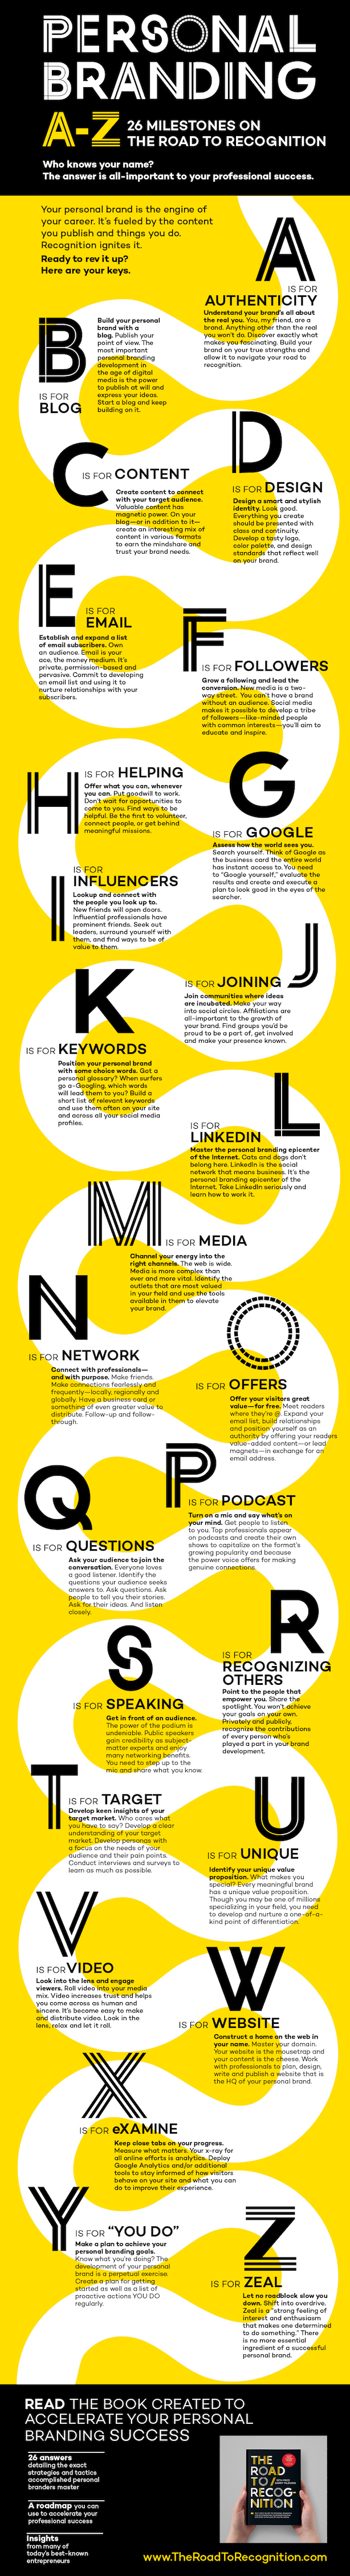 Seth Price Placester personal branding infographic